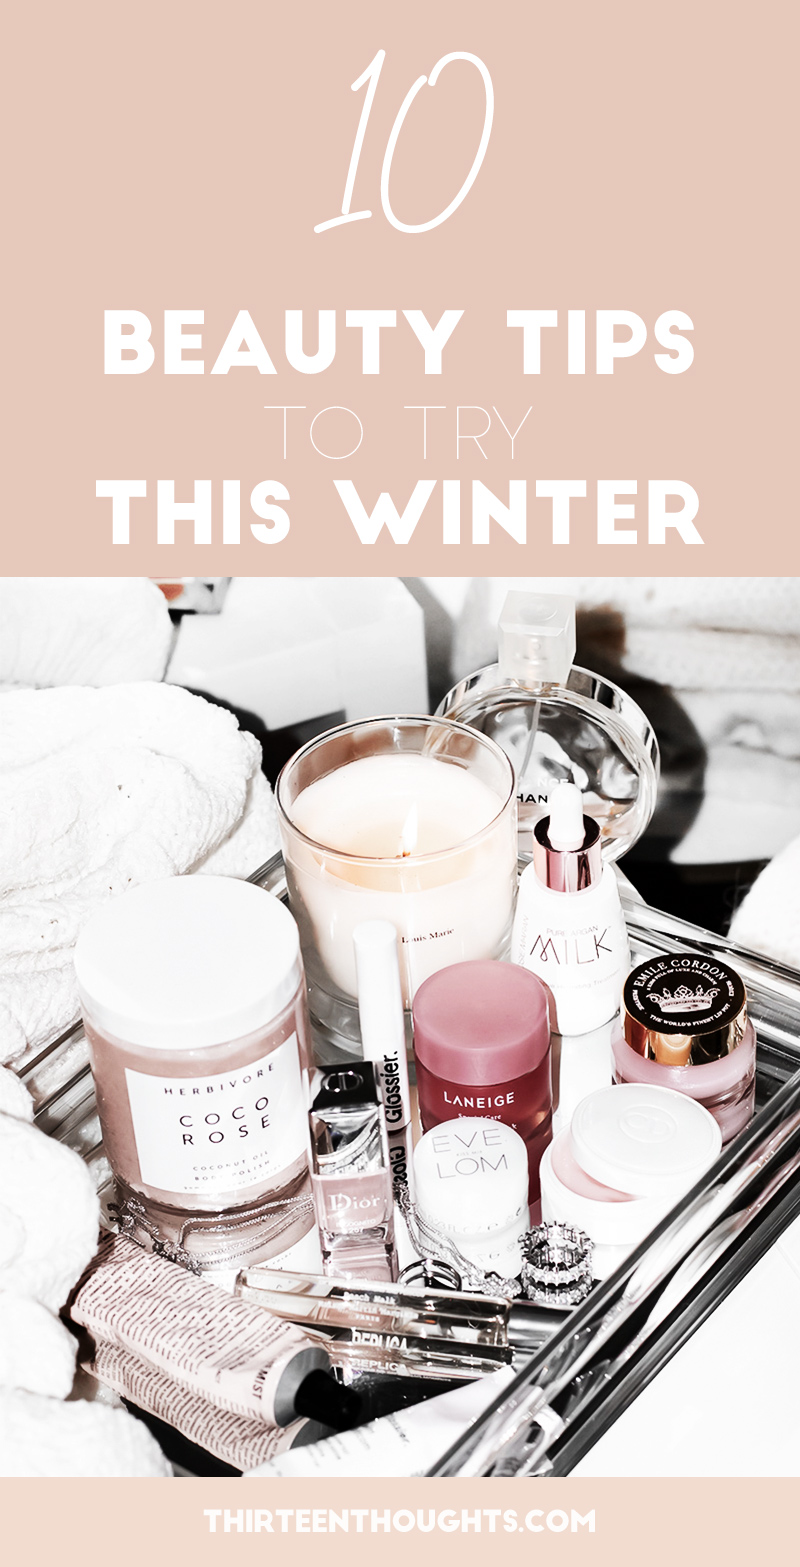 10 Beauty Tips for Winter.